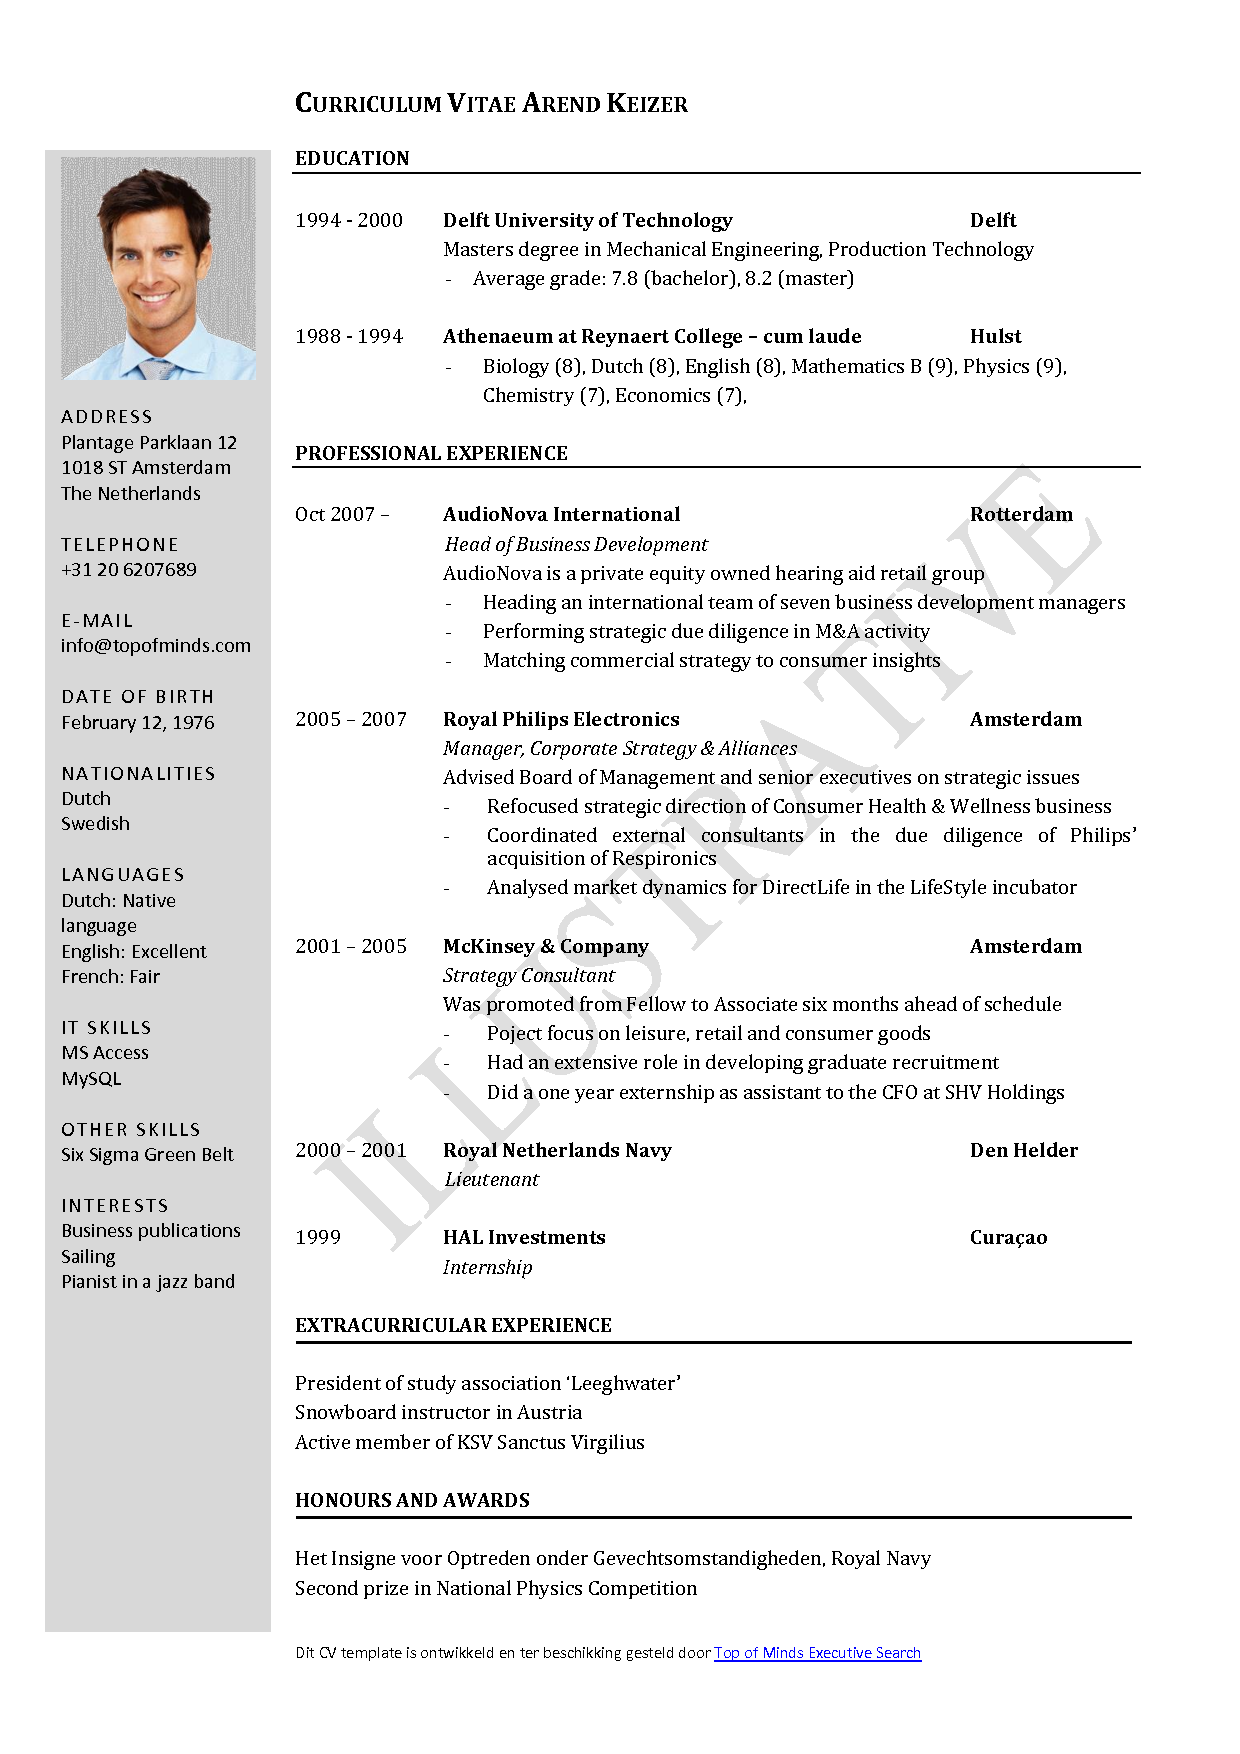 free curriculum vitae template word download cv template - Resume Format English